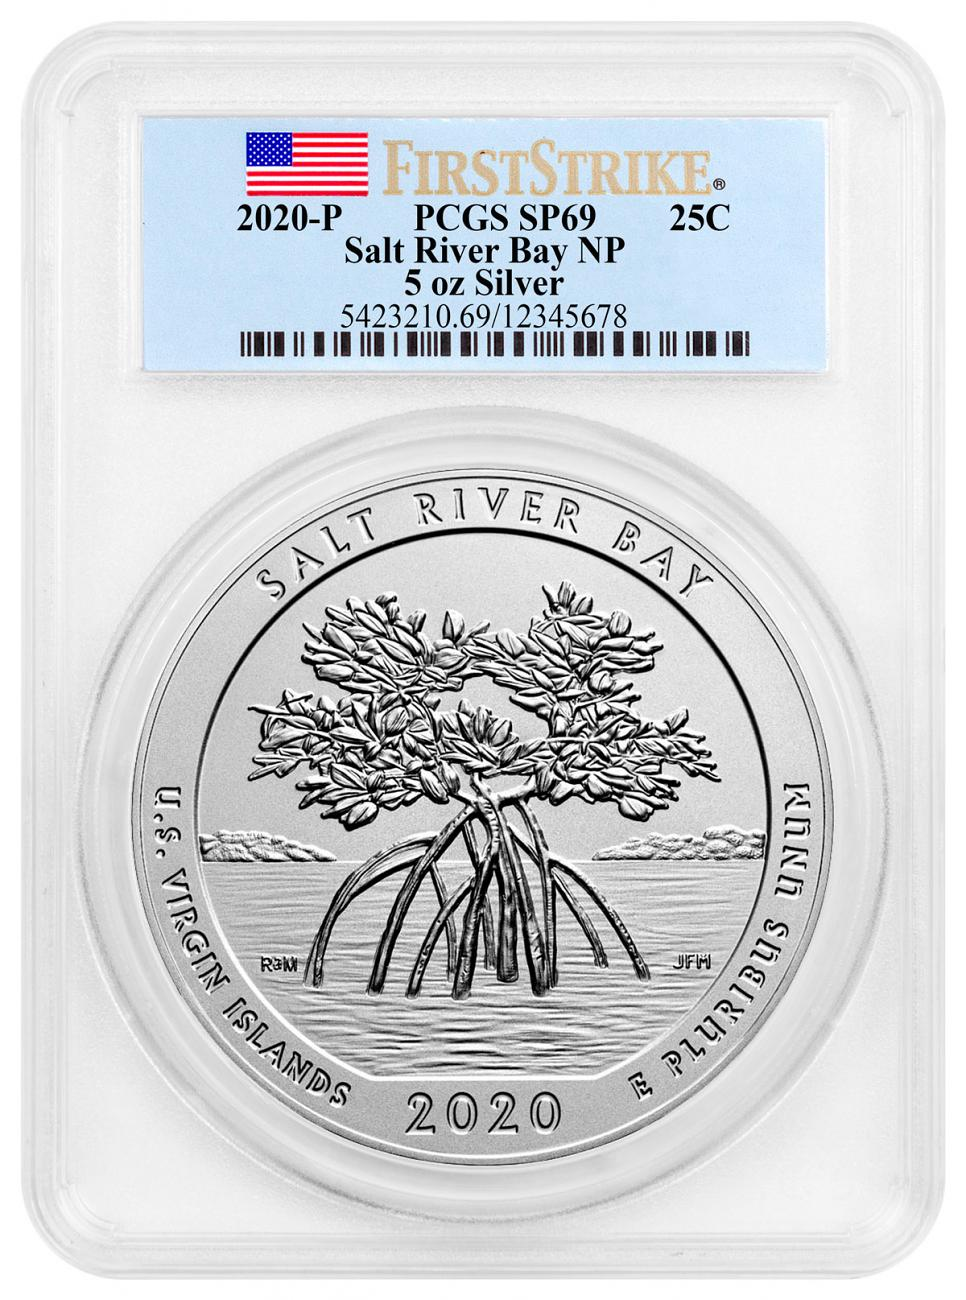 2020-P Salt River Bay NP and Ecological Preserve 5 oz. Silver America the Beautiful Specimen Coin PCGS SP69 FS Flag Label